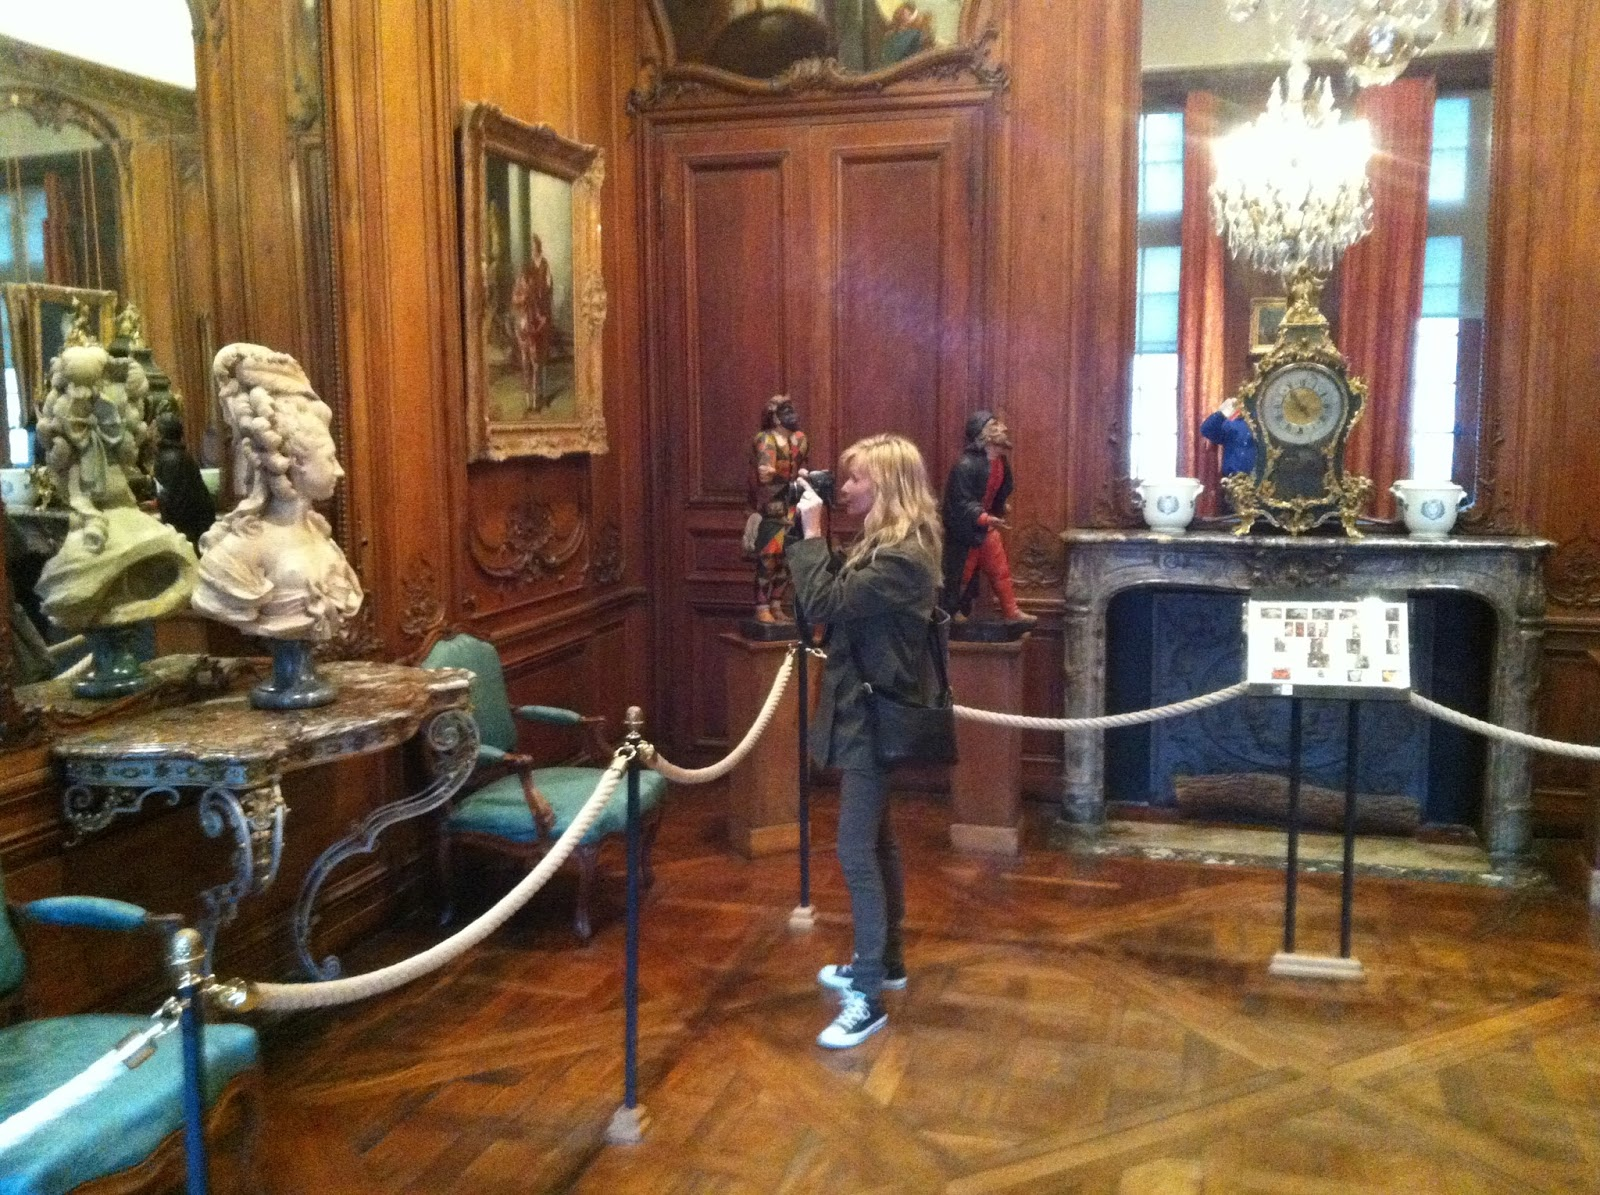 Inside Musee de Carnavalet in Paris - Hello Lovely Studio